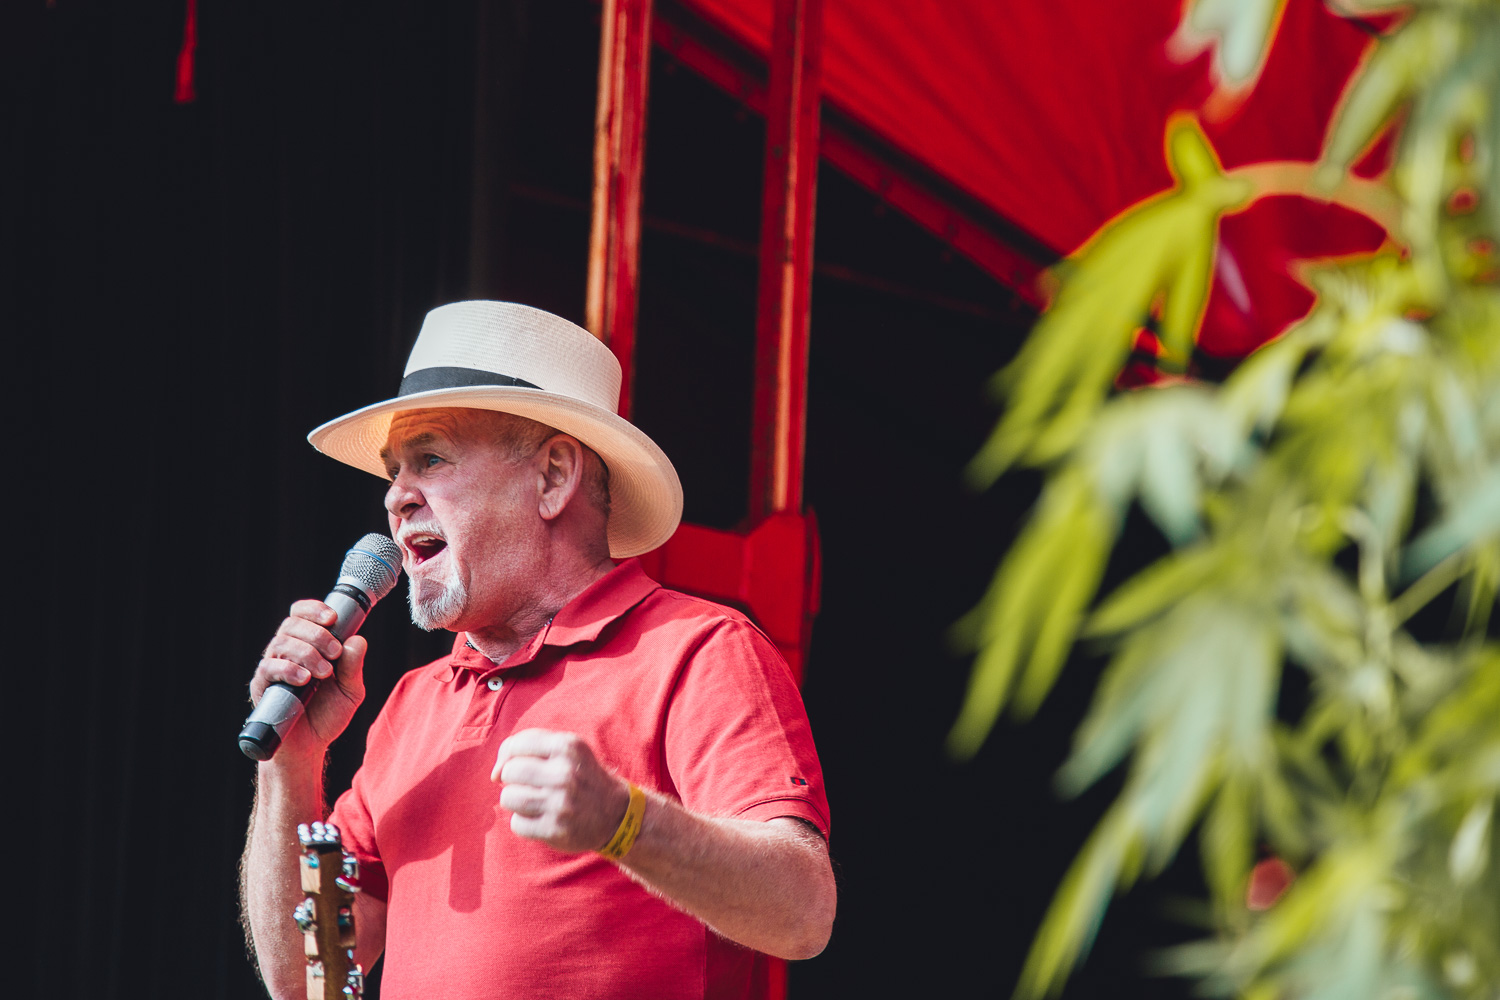 Rick on stage in at the cannabis liberation festival in Amsterdam